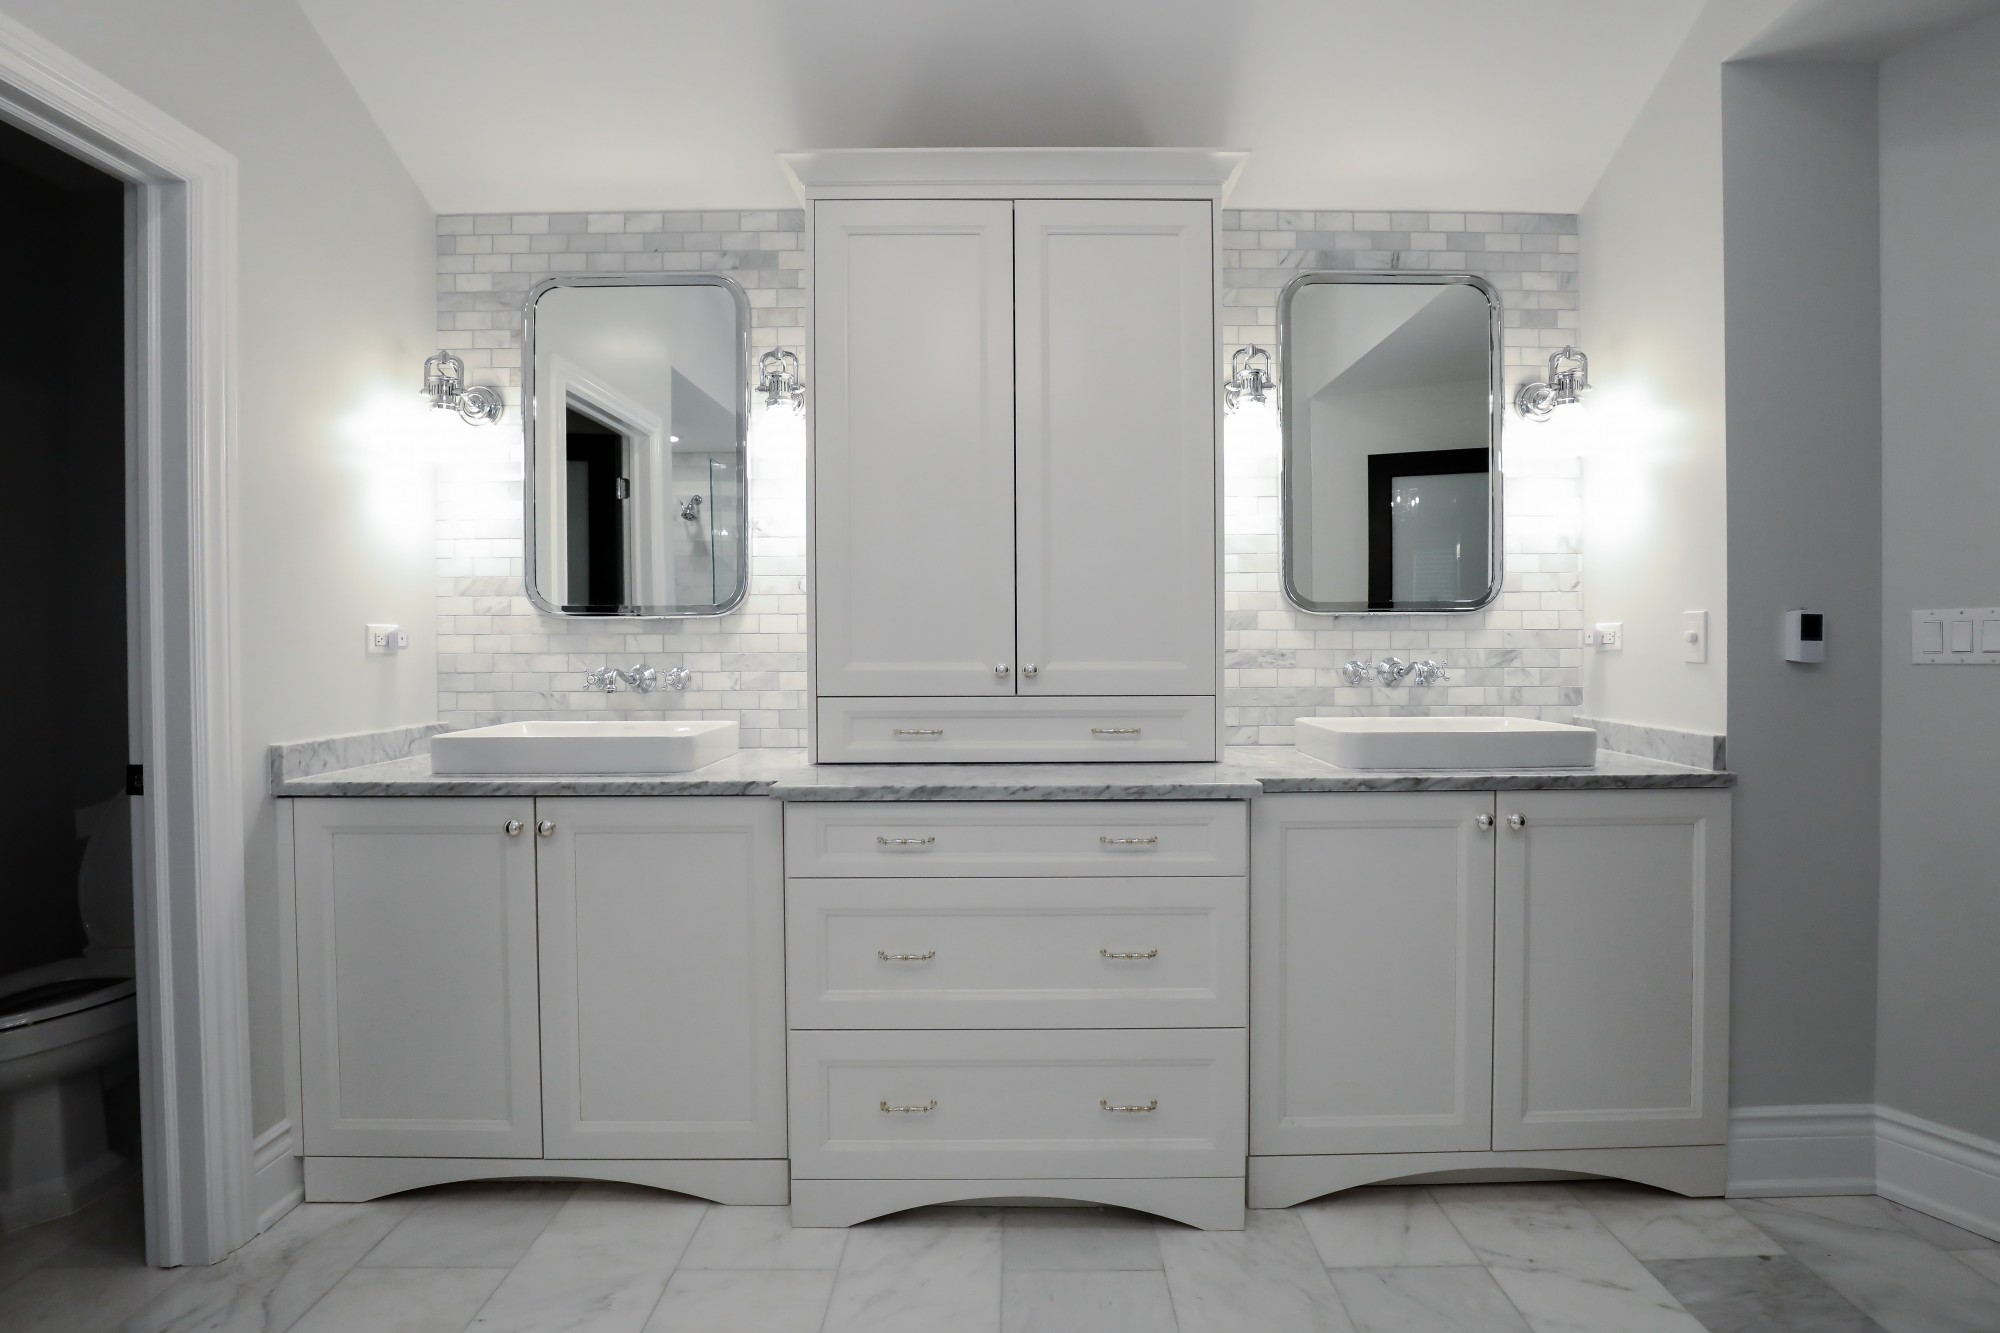 Cabinets - Kitchen & Bath | Kitchen Cabinets & Bathroom ... on Bathroom Ideas With Maple Cabinets  id=55212